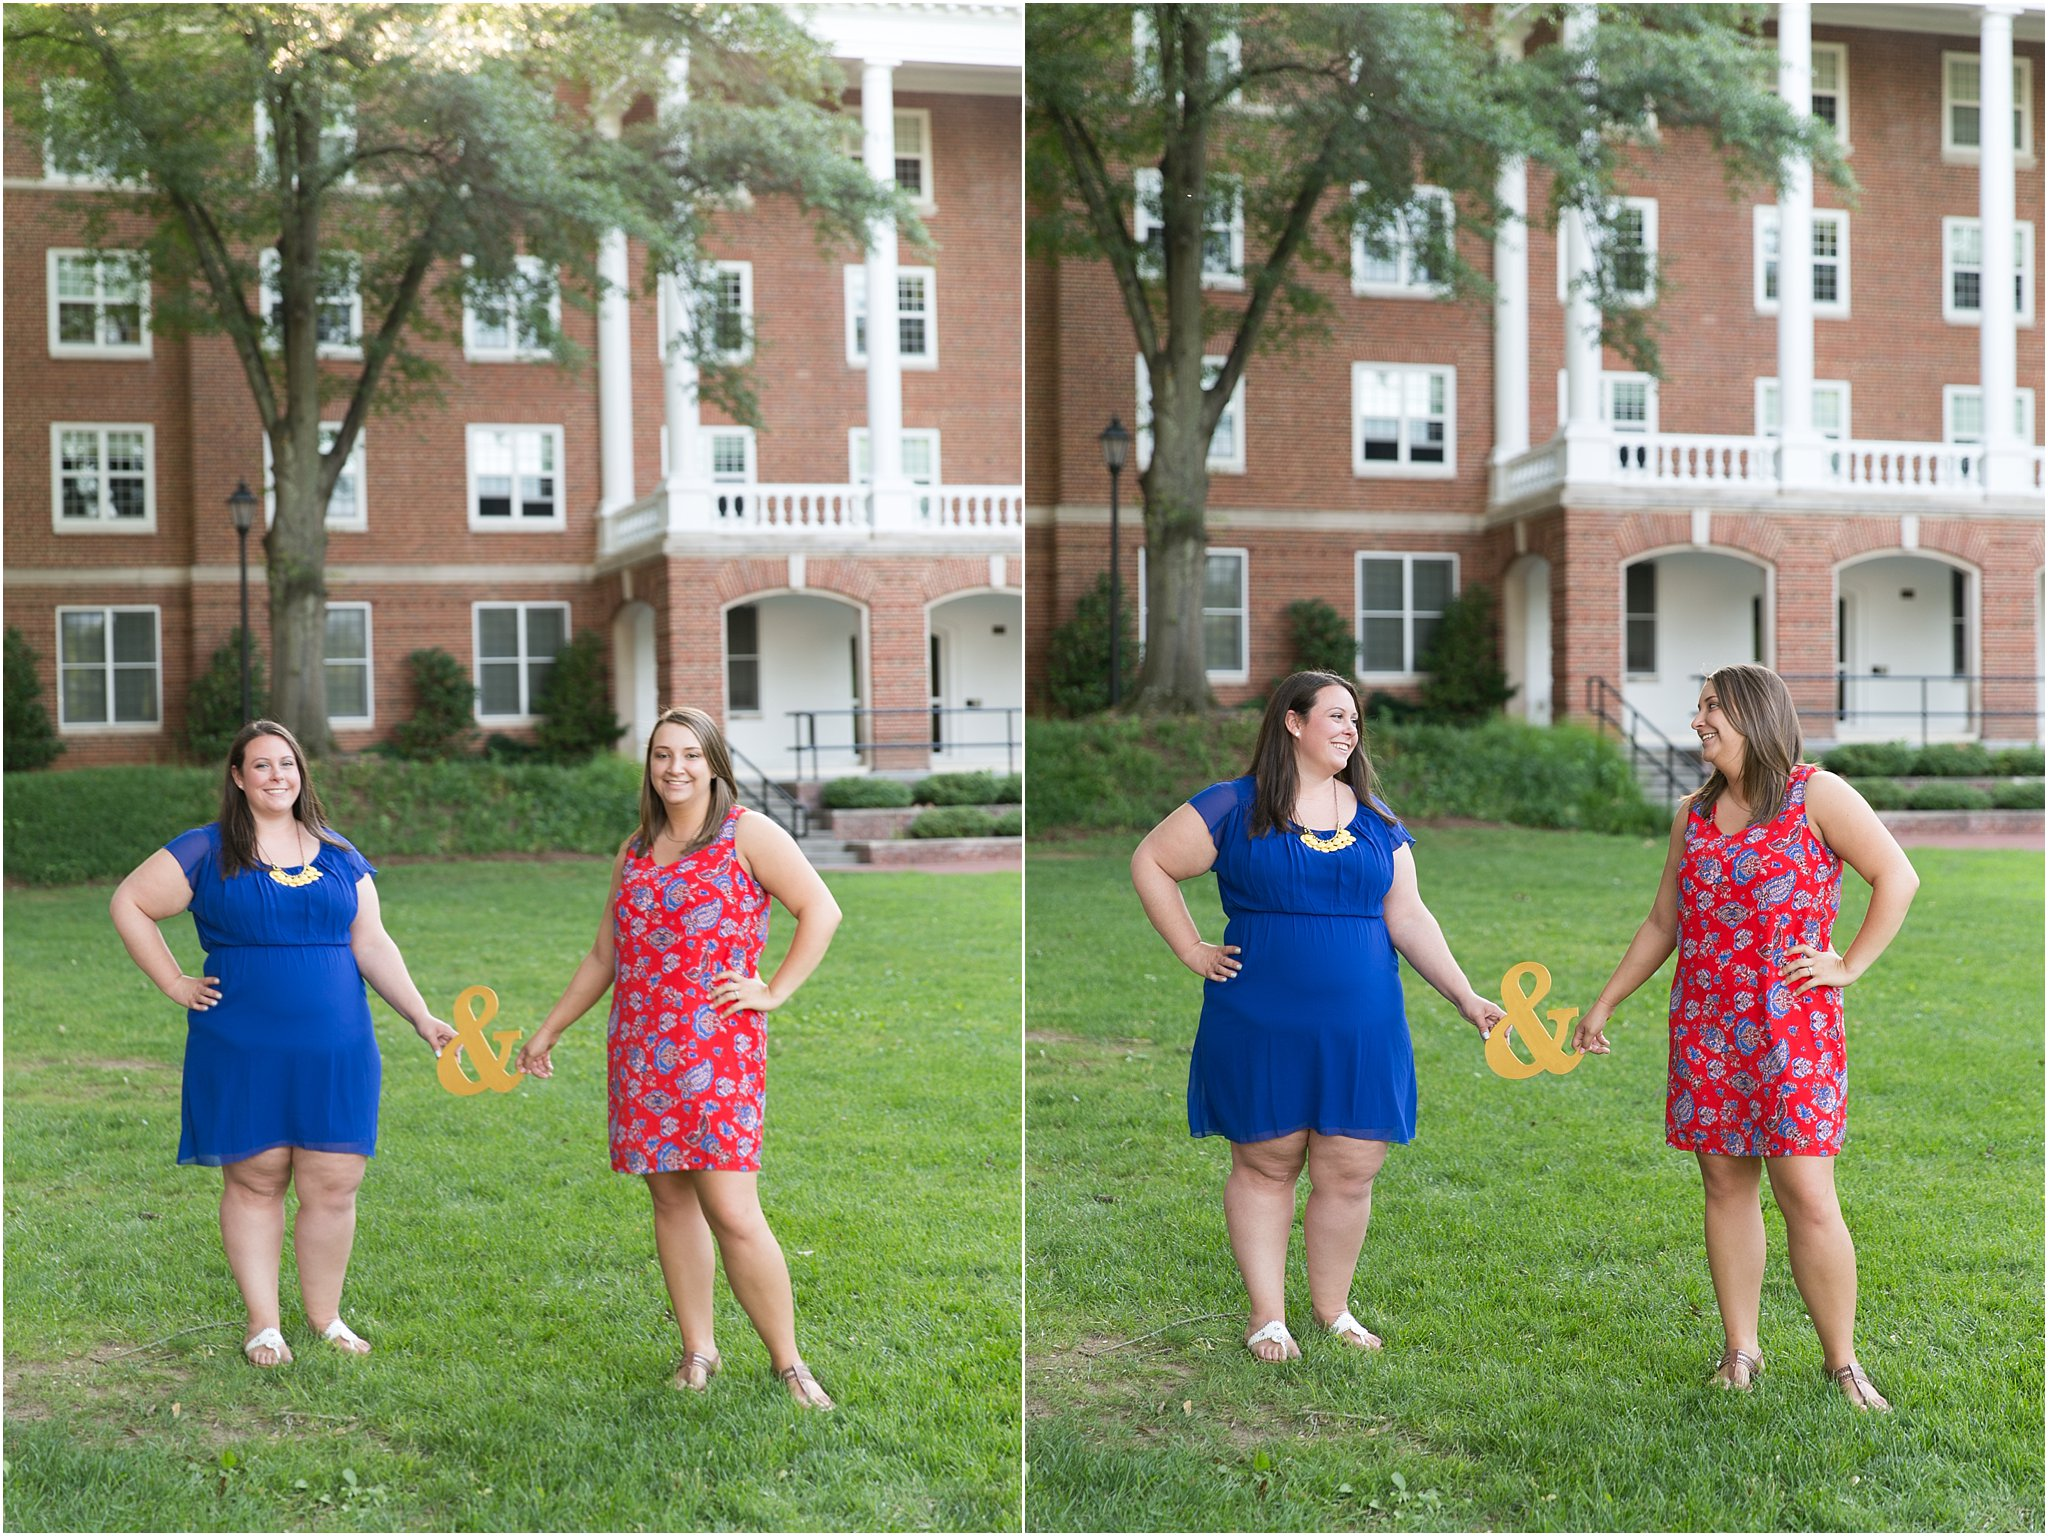 jessica_ryan_photography_longwood_university_engagement_portraits_virginia_0717